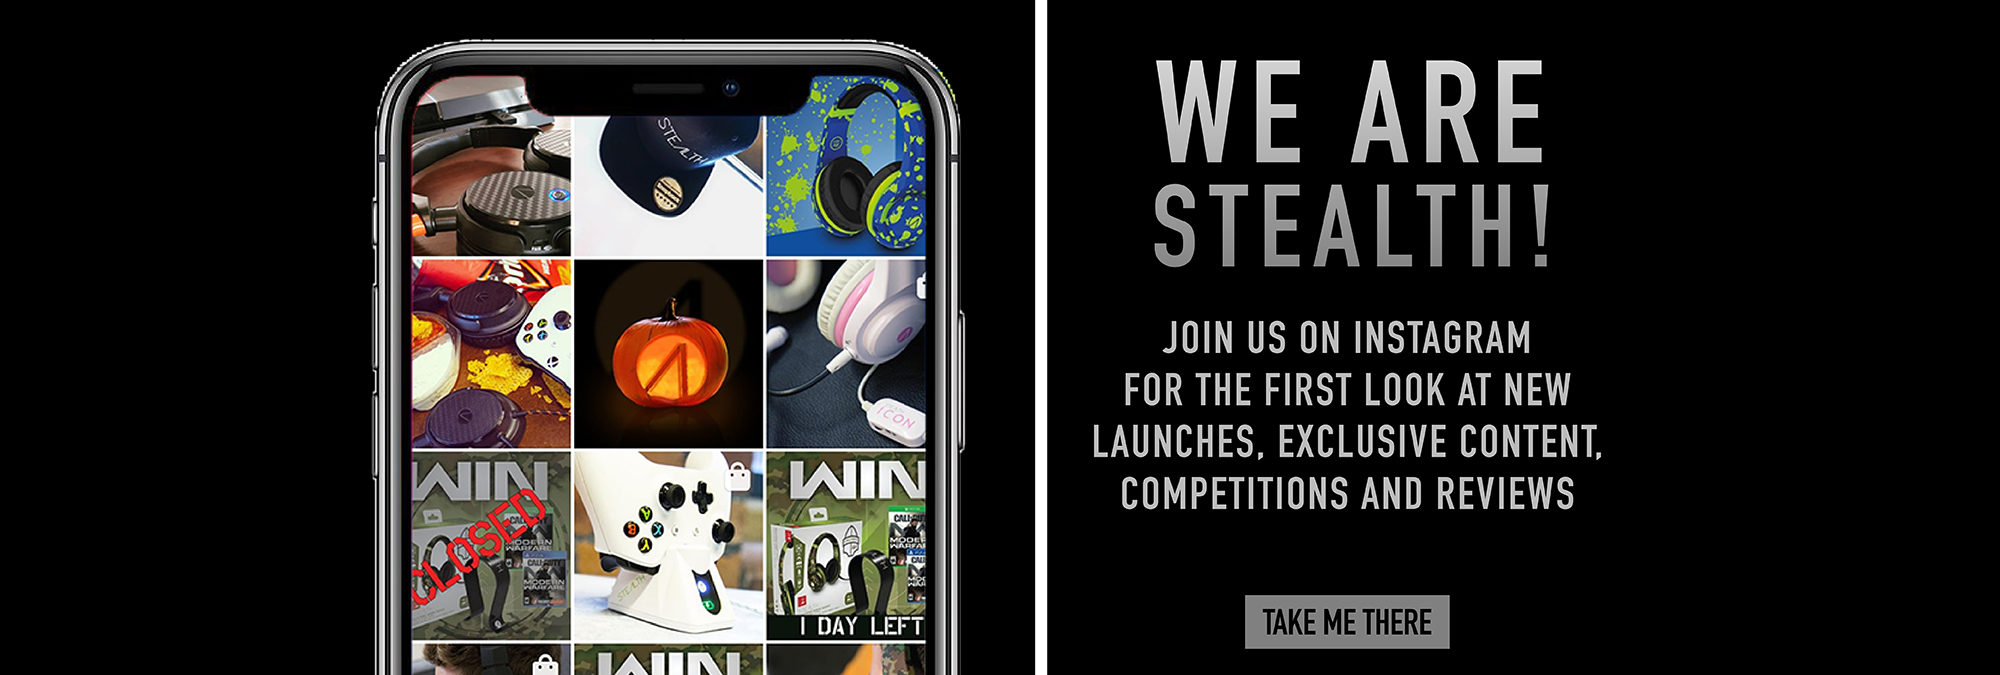 JOIN STEALTH ON INSTAGRAM!